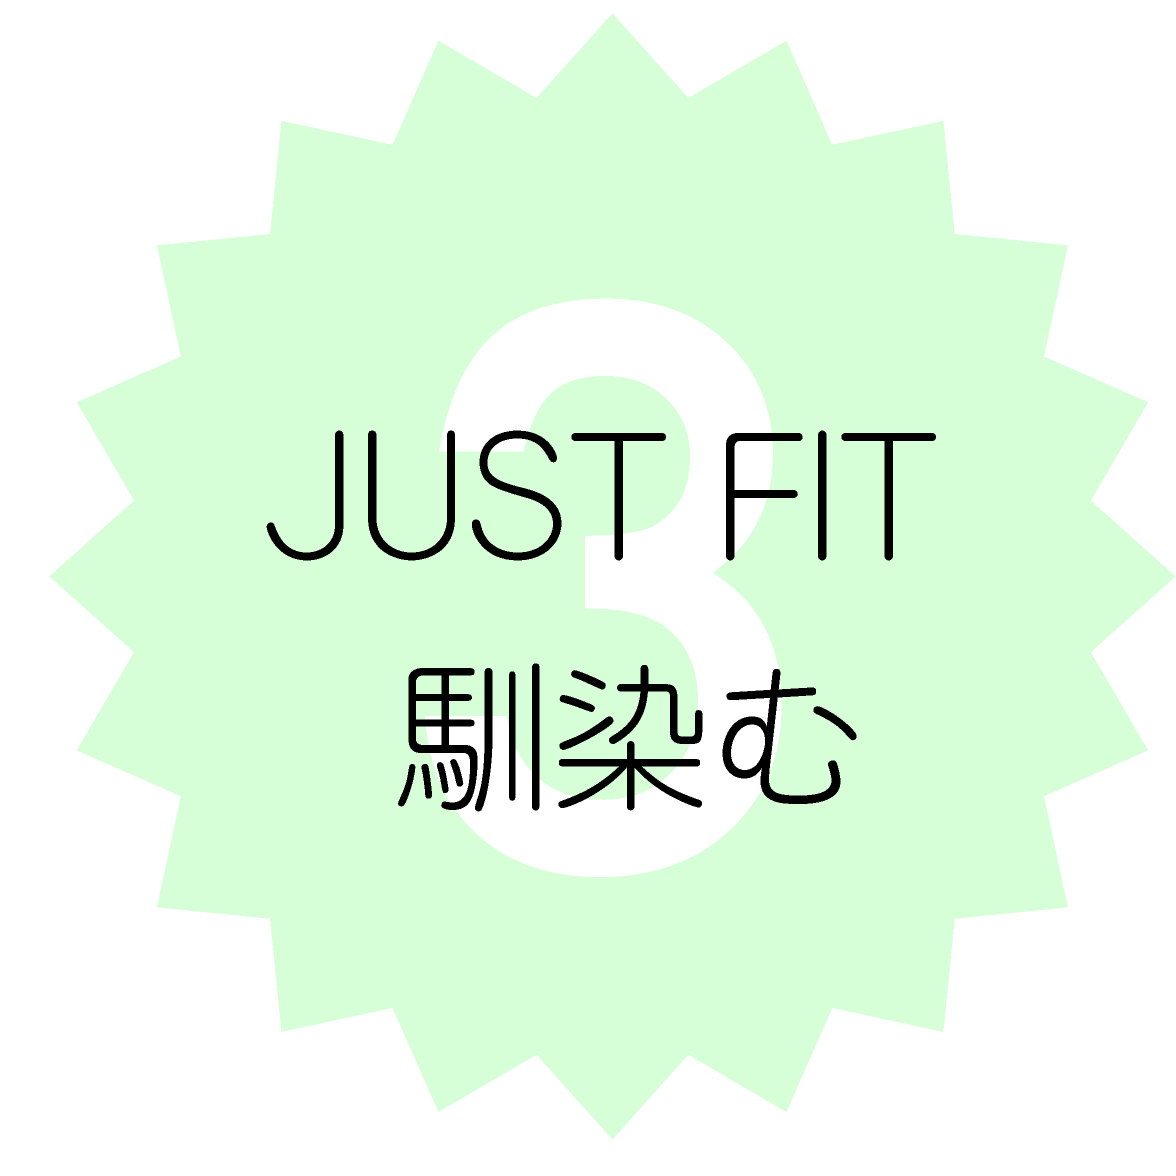 3. JUST FIT 馴染む